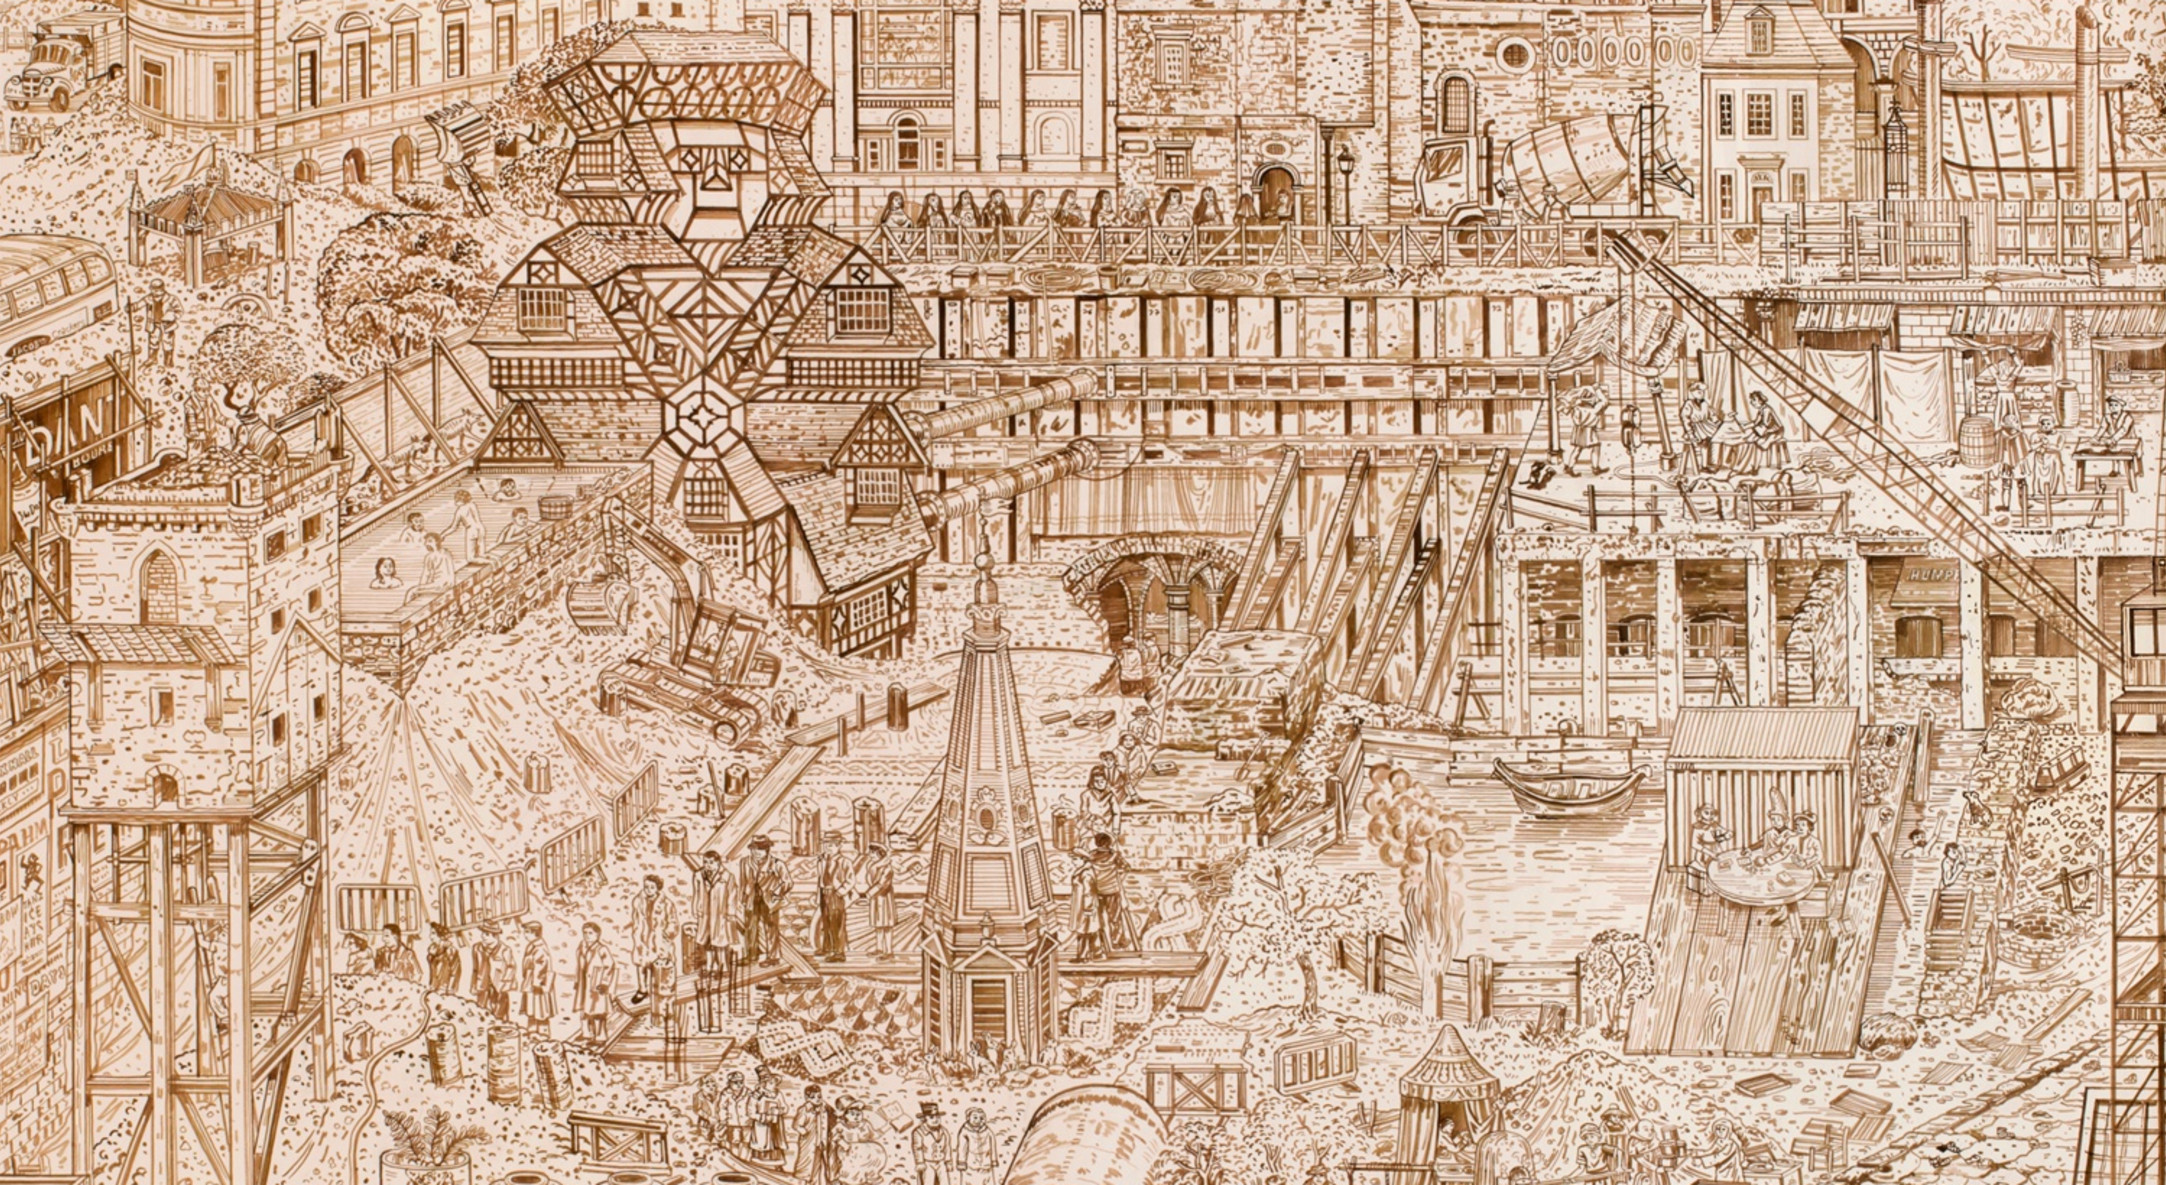 Detail of Adam Dant, Budge Row Bibliotheque, 2014, Ink on paper, 243 x 366 cm, 95 5/8 x 144 1/8 in